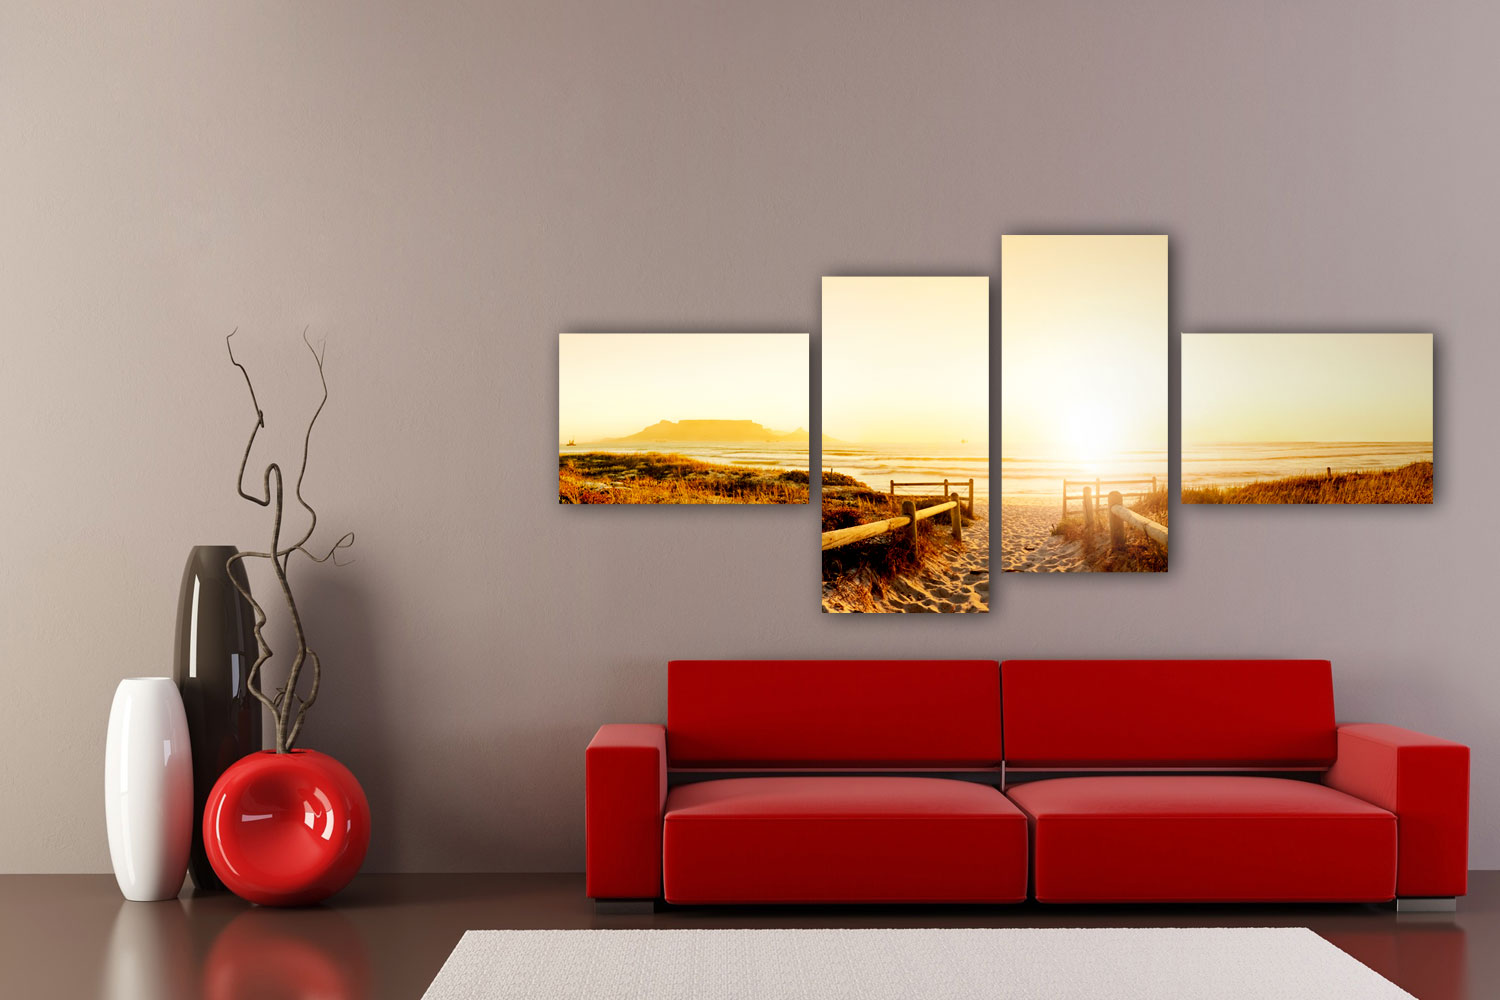 leinwandbild sonnenuntergang ozean bild auf leinwand kunstdruck ebay. Black Bedroom Furniture Sets. Home Design Ideas